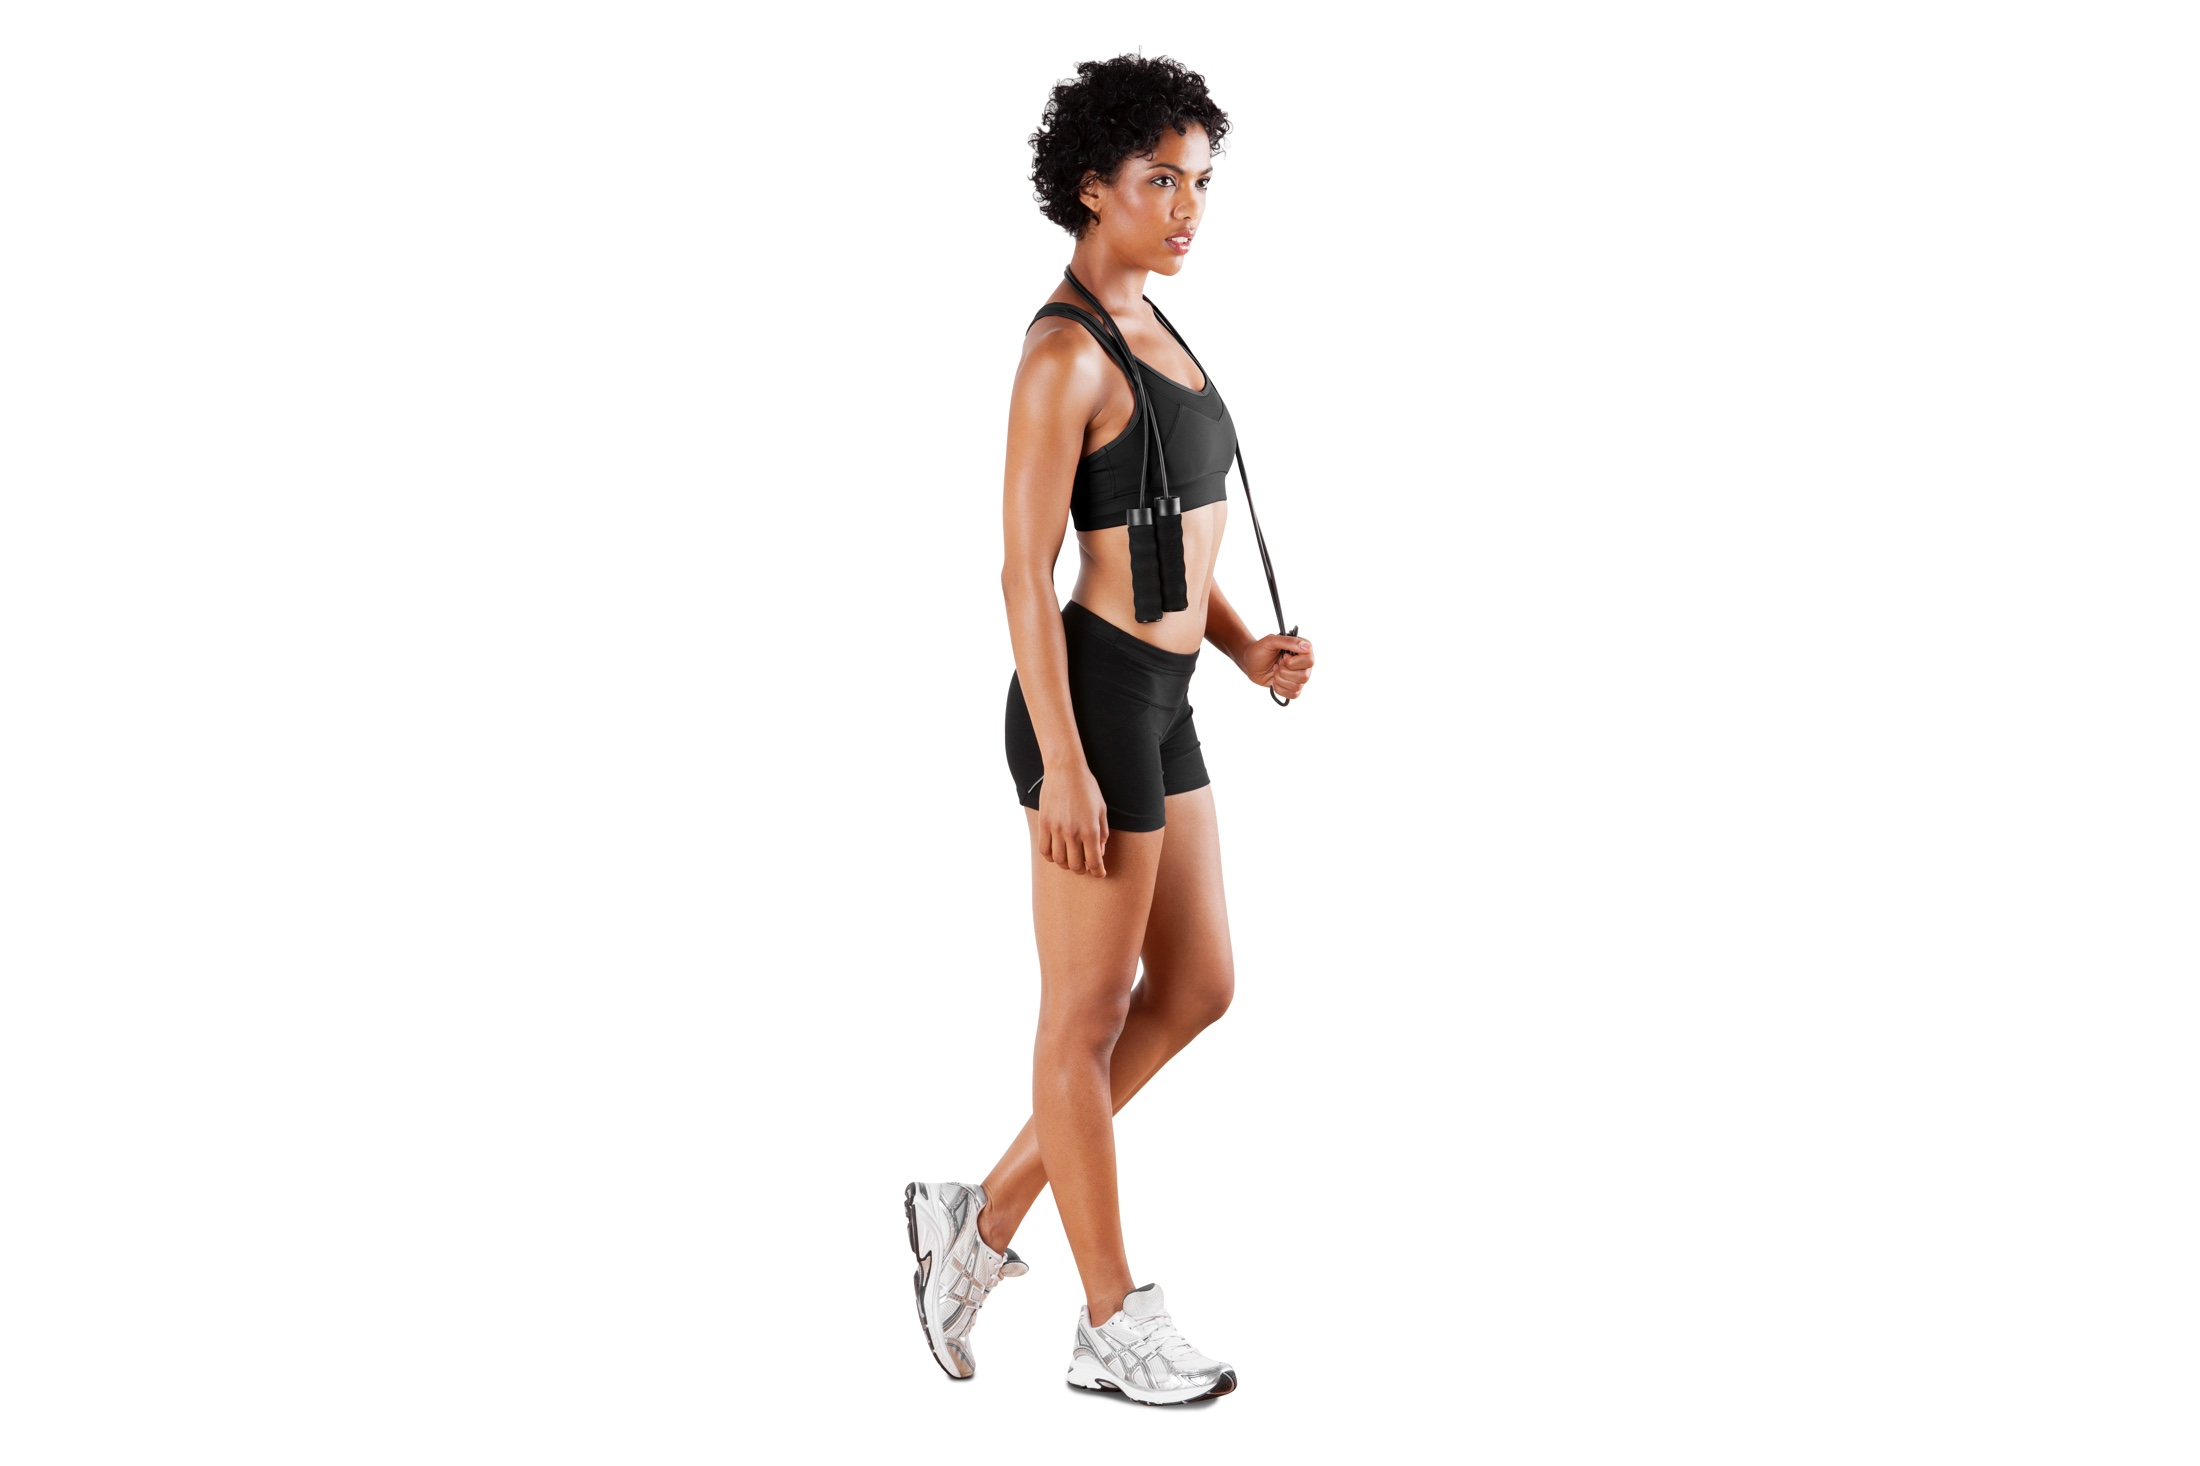 NordicTrack Adjustable Weight Jump Rope gallery image 4